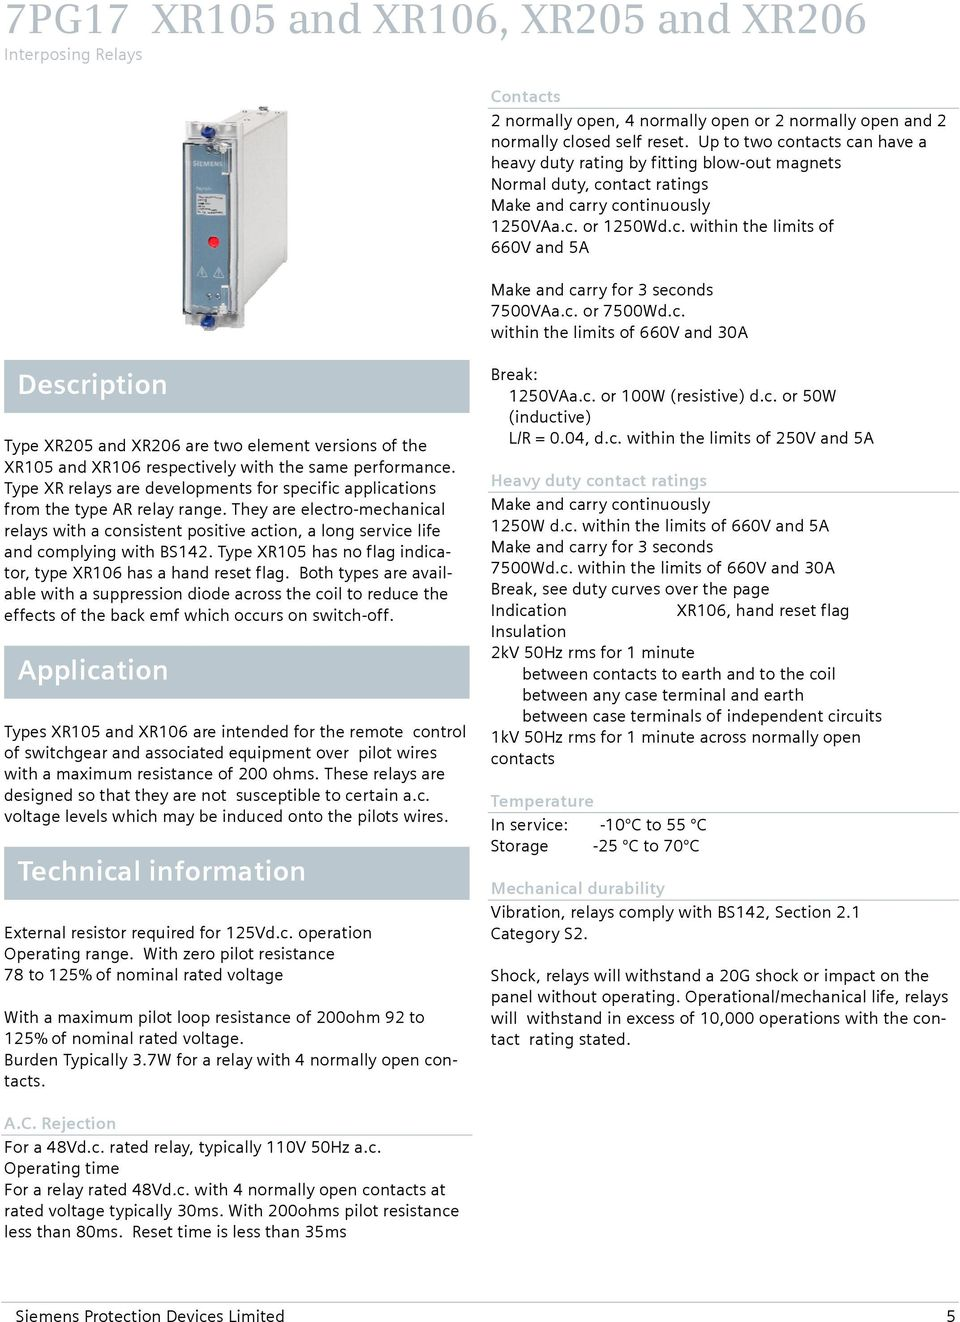 Reyrolle Protection Devices 7pg17 Xr Intertripping Interposing Relays Power Distribution 5 Pin Relay 12v 24v C Or 7500wdc Within The Limits Of 660v And 30a Description Type